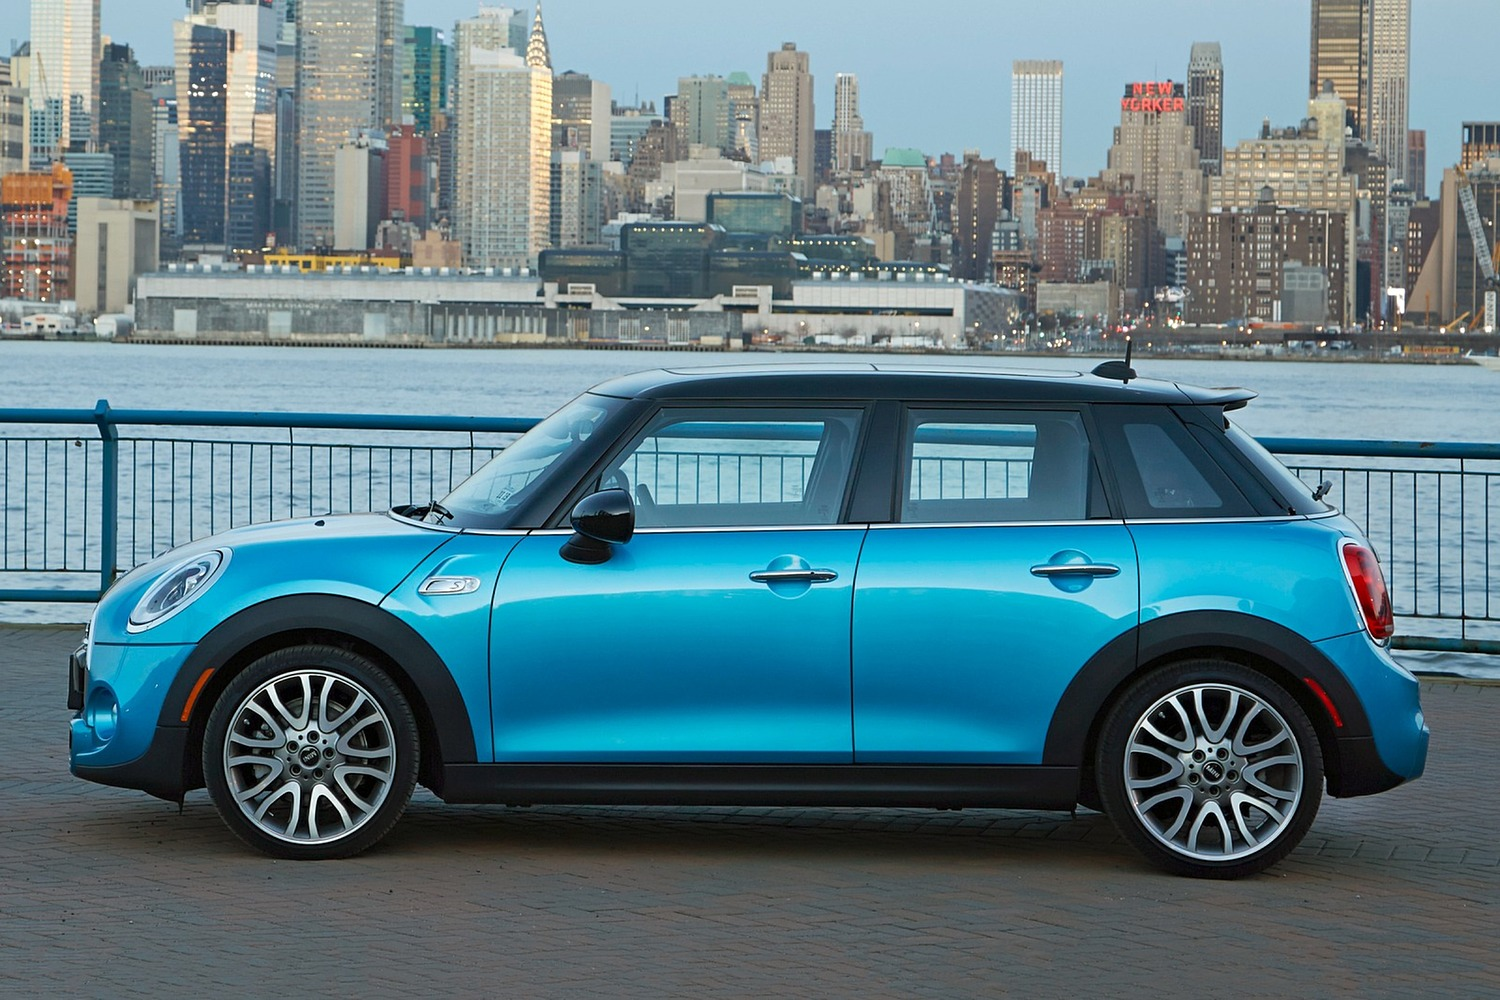 2017 MINI Hardtop 4 Door Cooper S 4dr Hatchback Exterior. Options Shown.